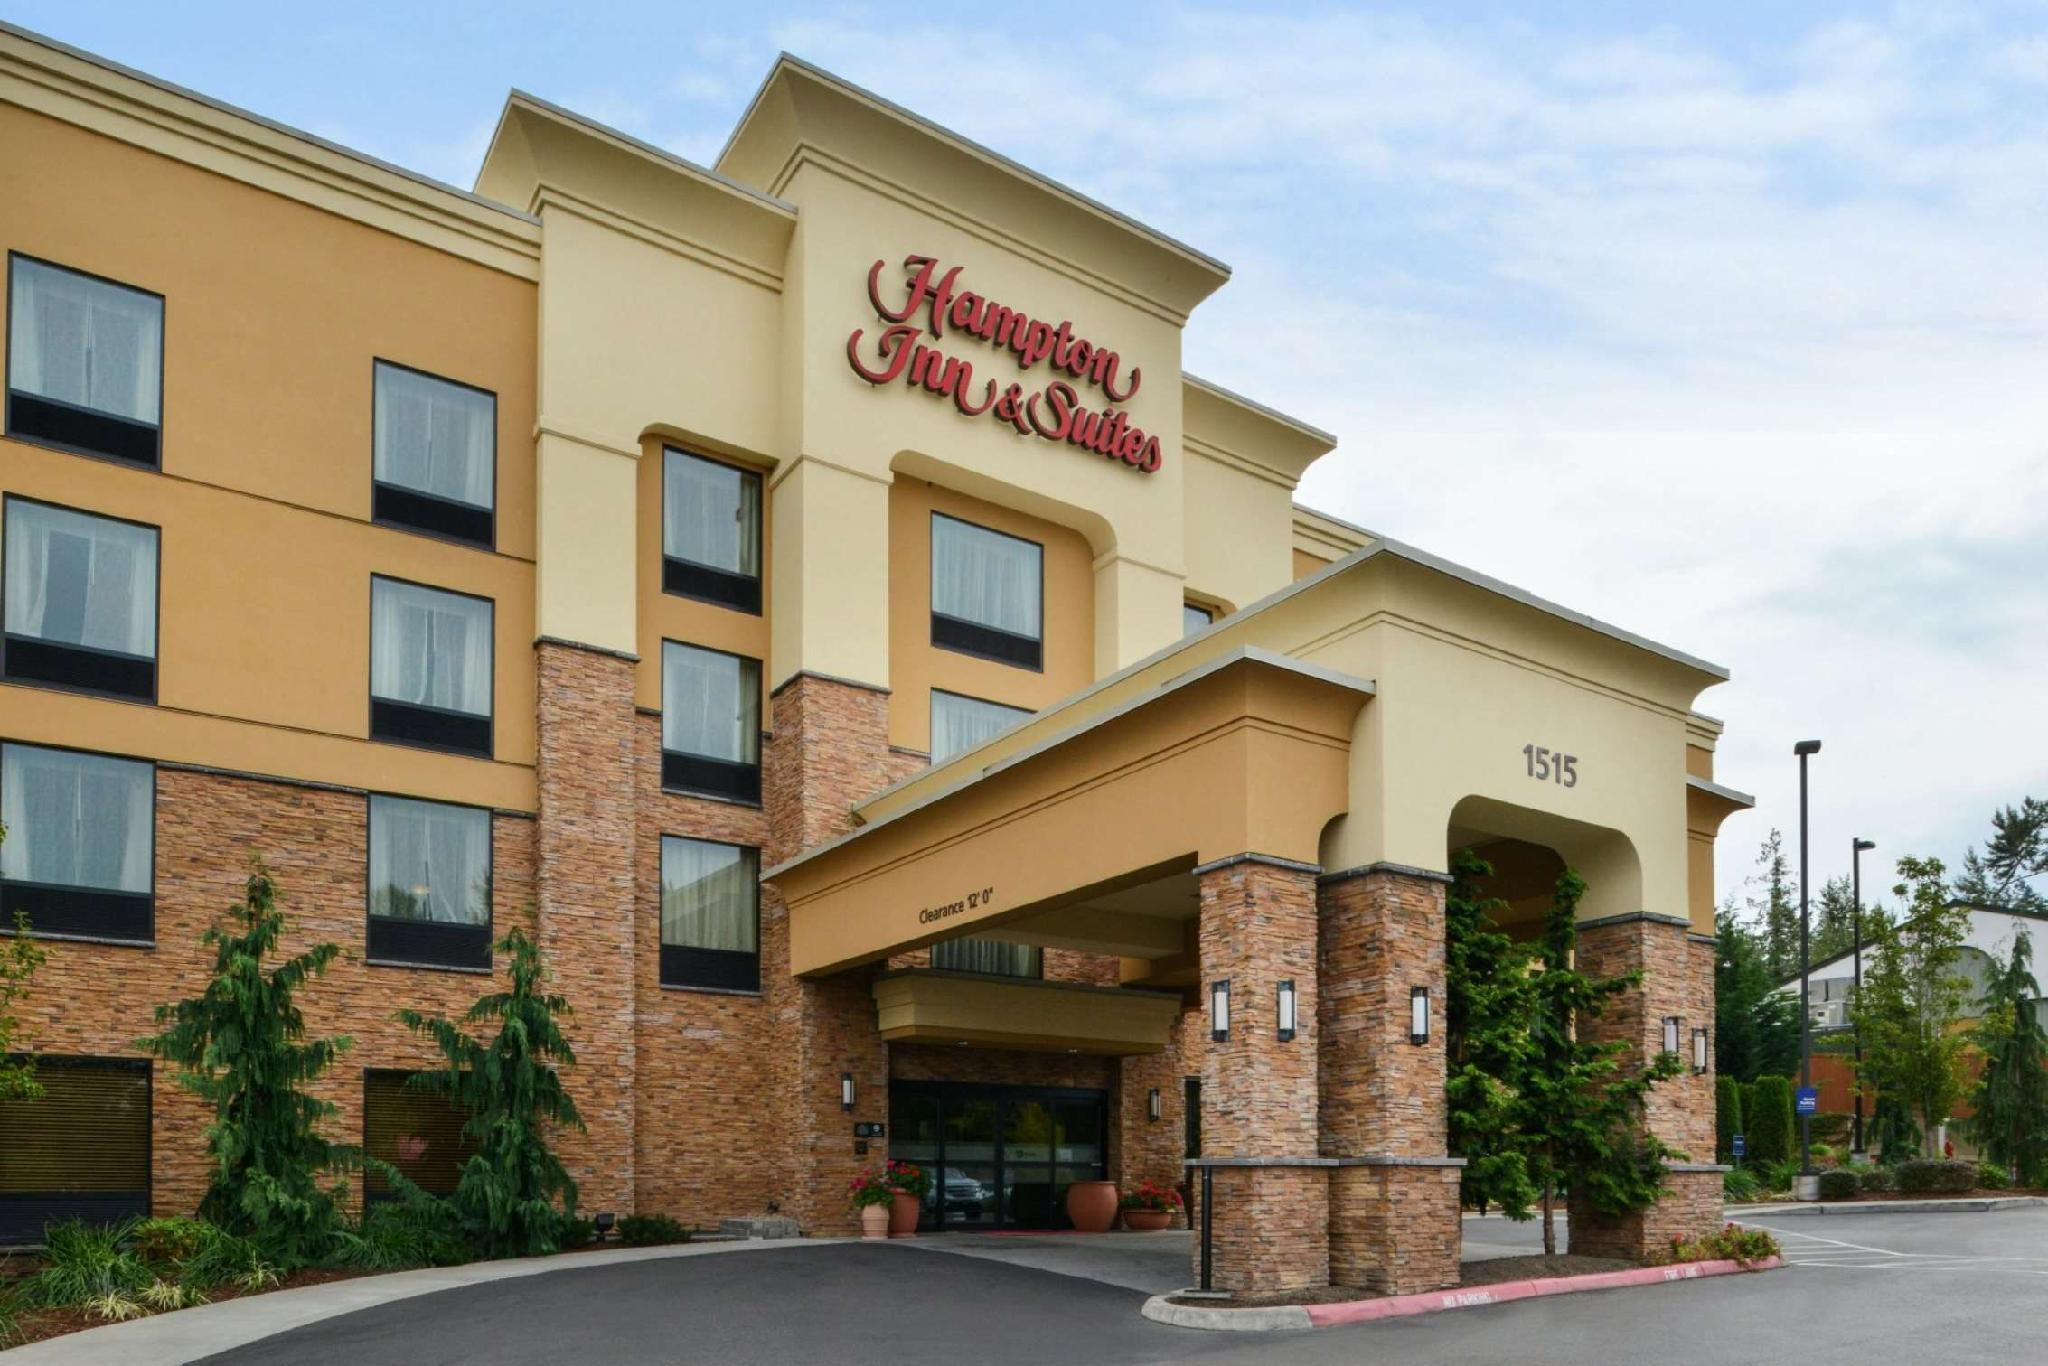 Hampton Inn and Suites by Hilton-Tacoma/Puyallup, WA